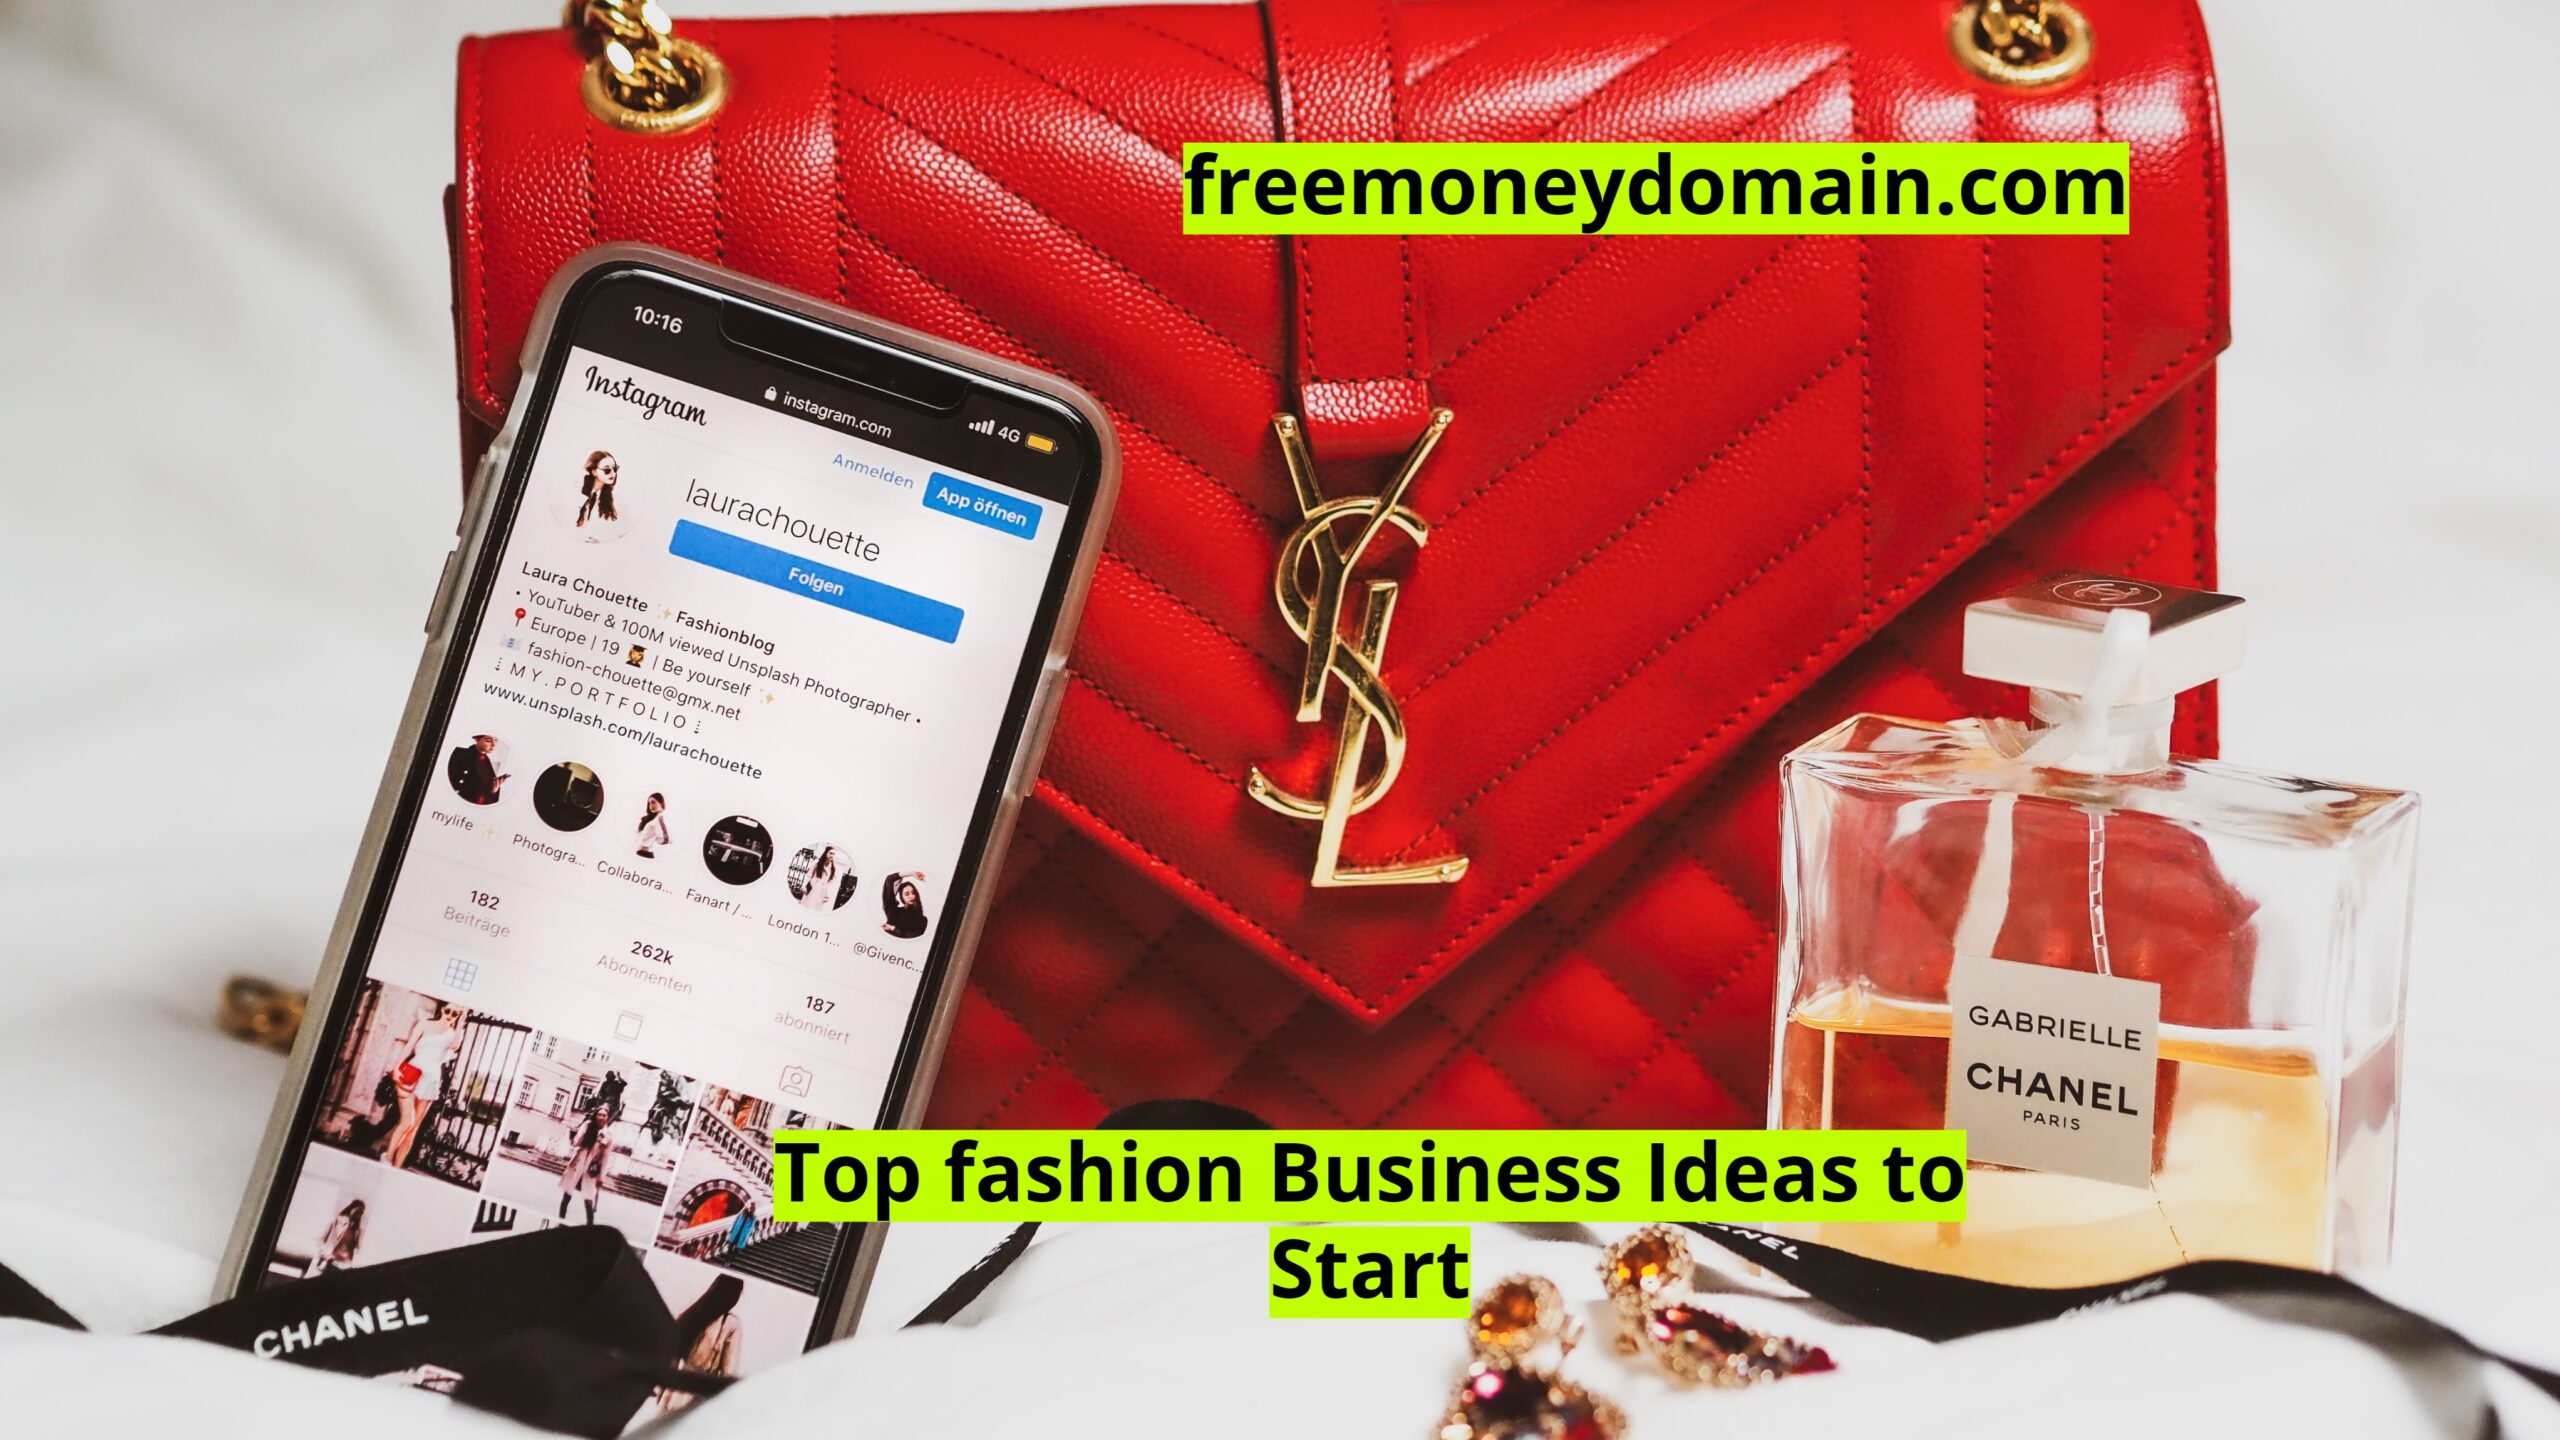 Top Fashion Business Ideas to start in 2021